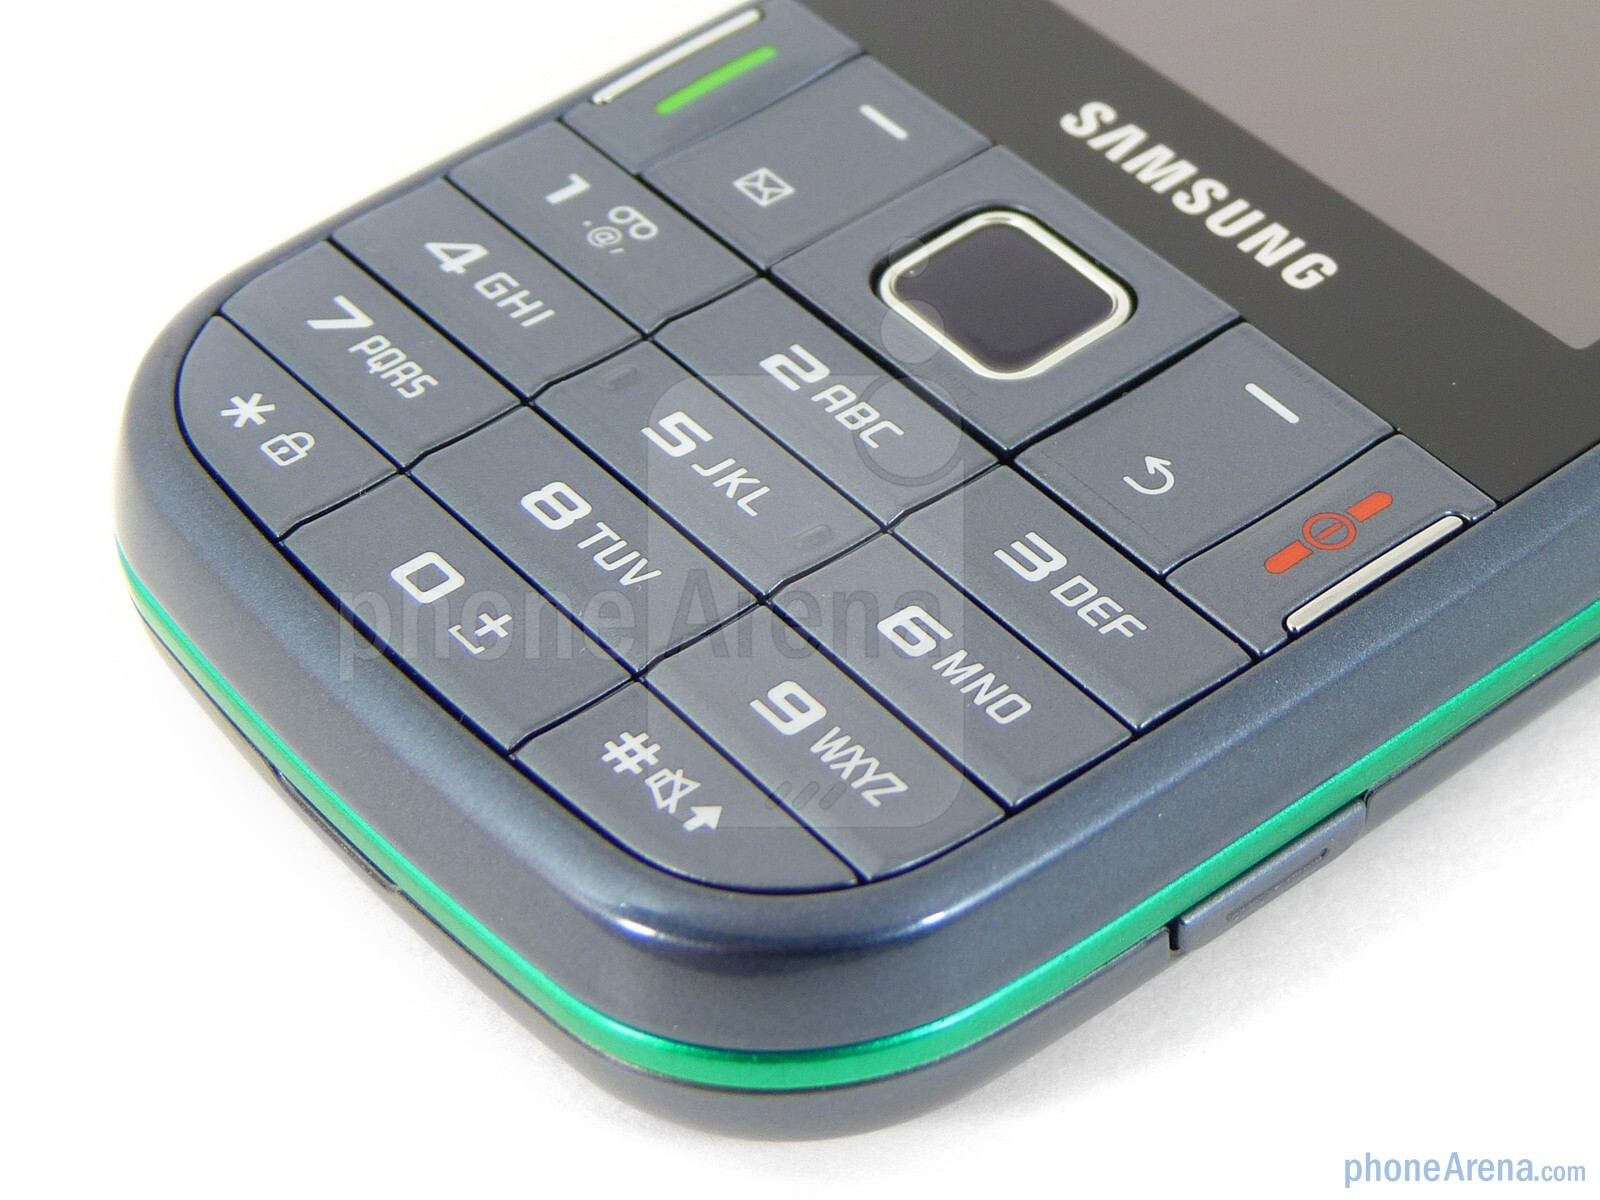 Phone Android Phone Keypad regular cell phone keypad images guru samsung gravity txt review